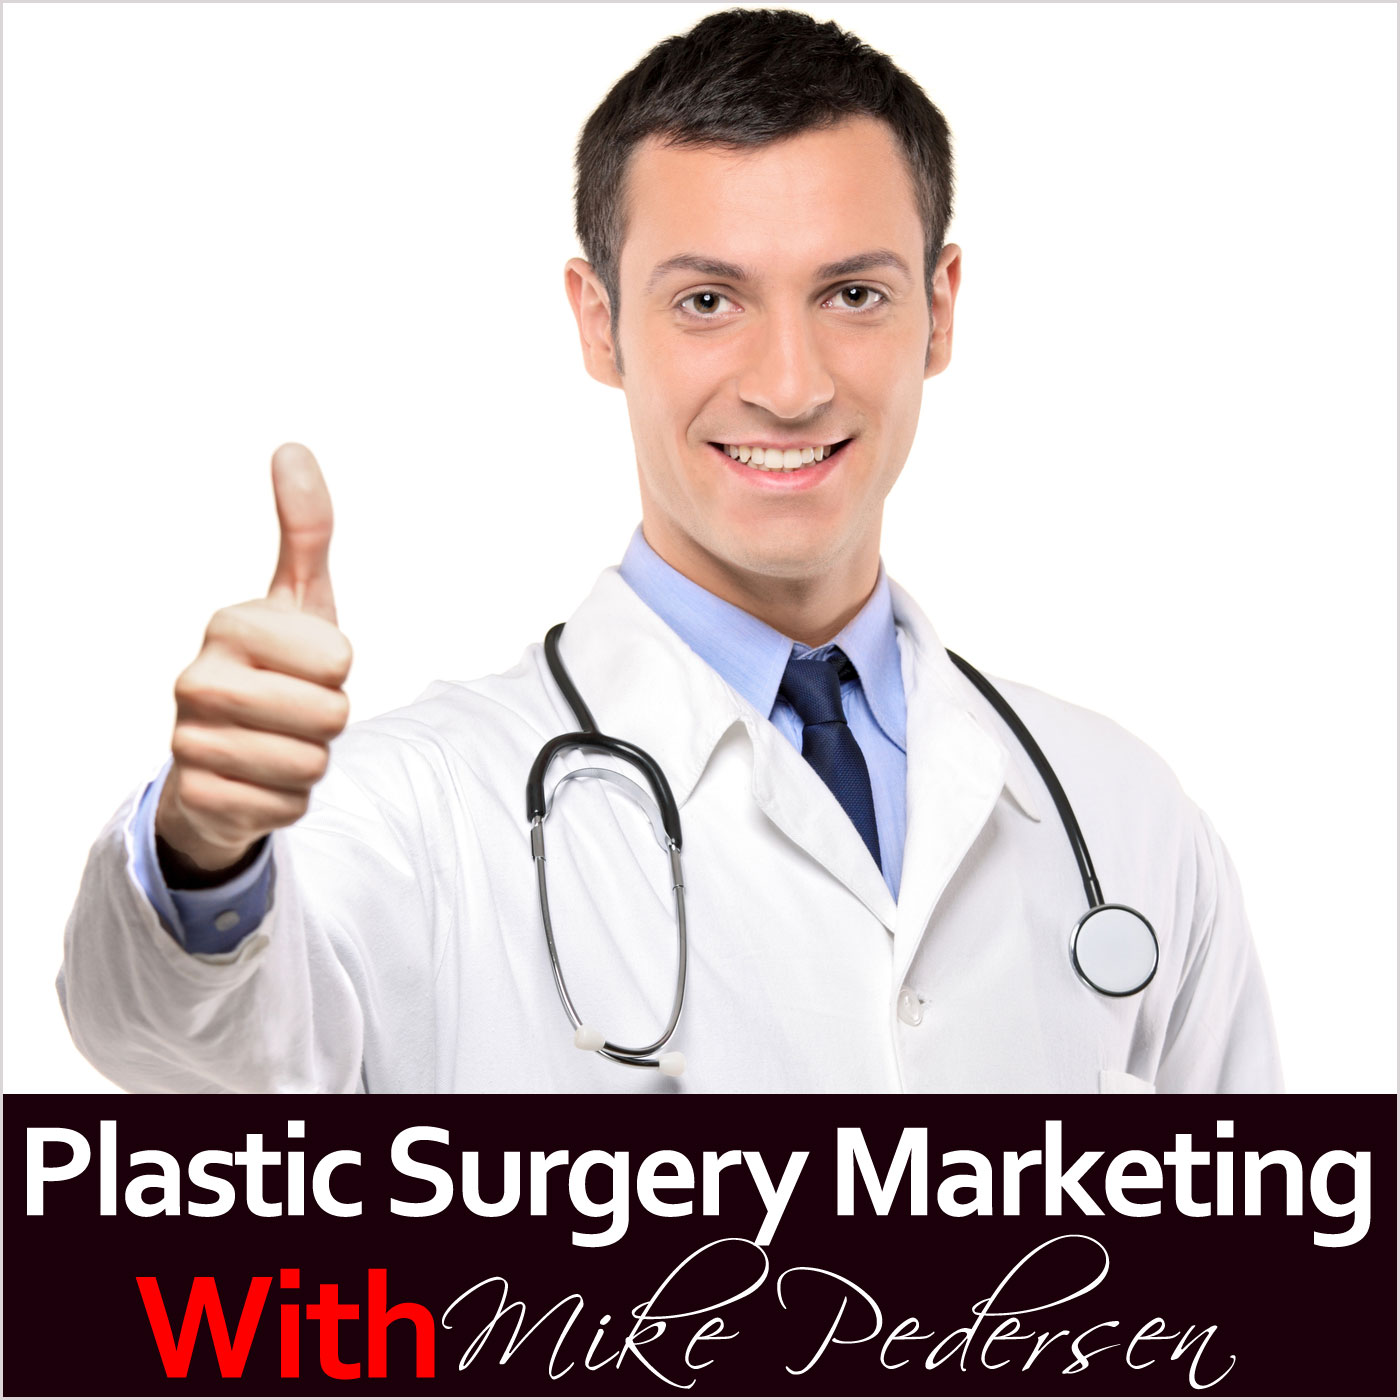 Plastic Surgery Marketing | Internet Consultant | Lead